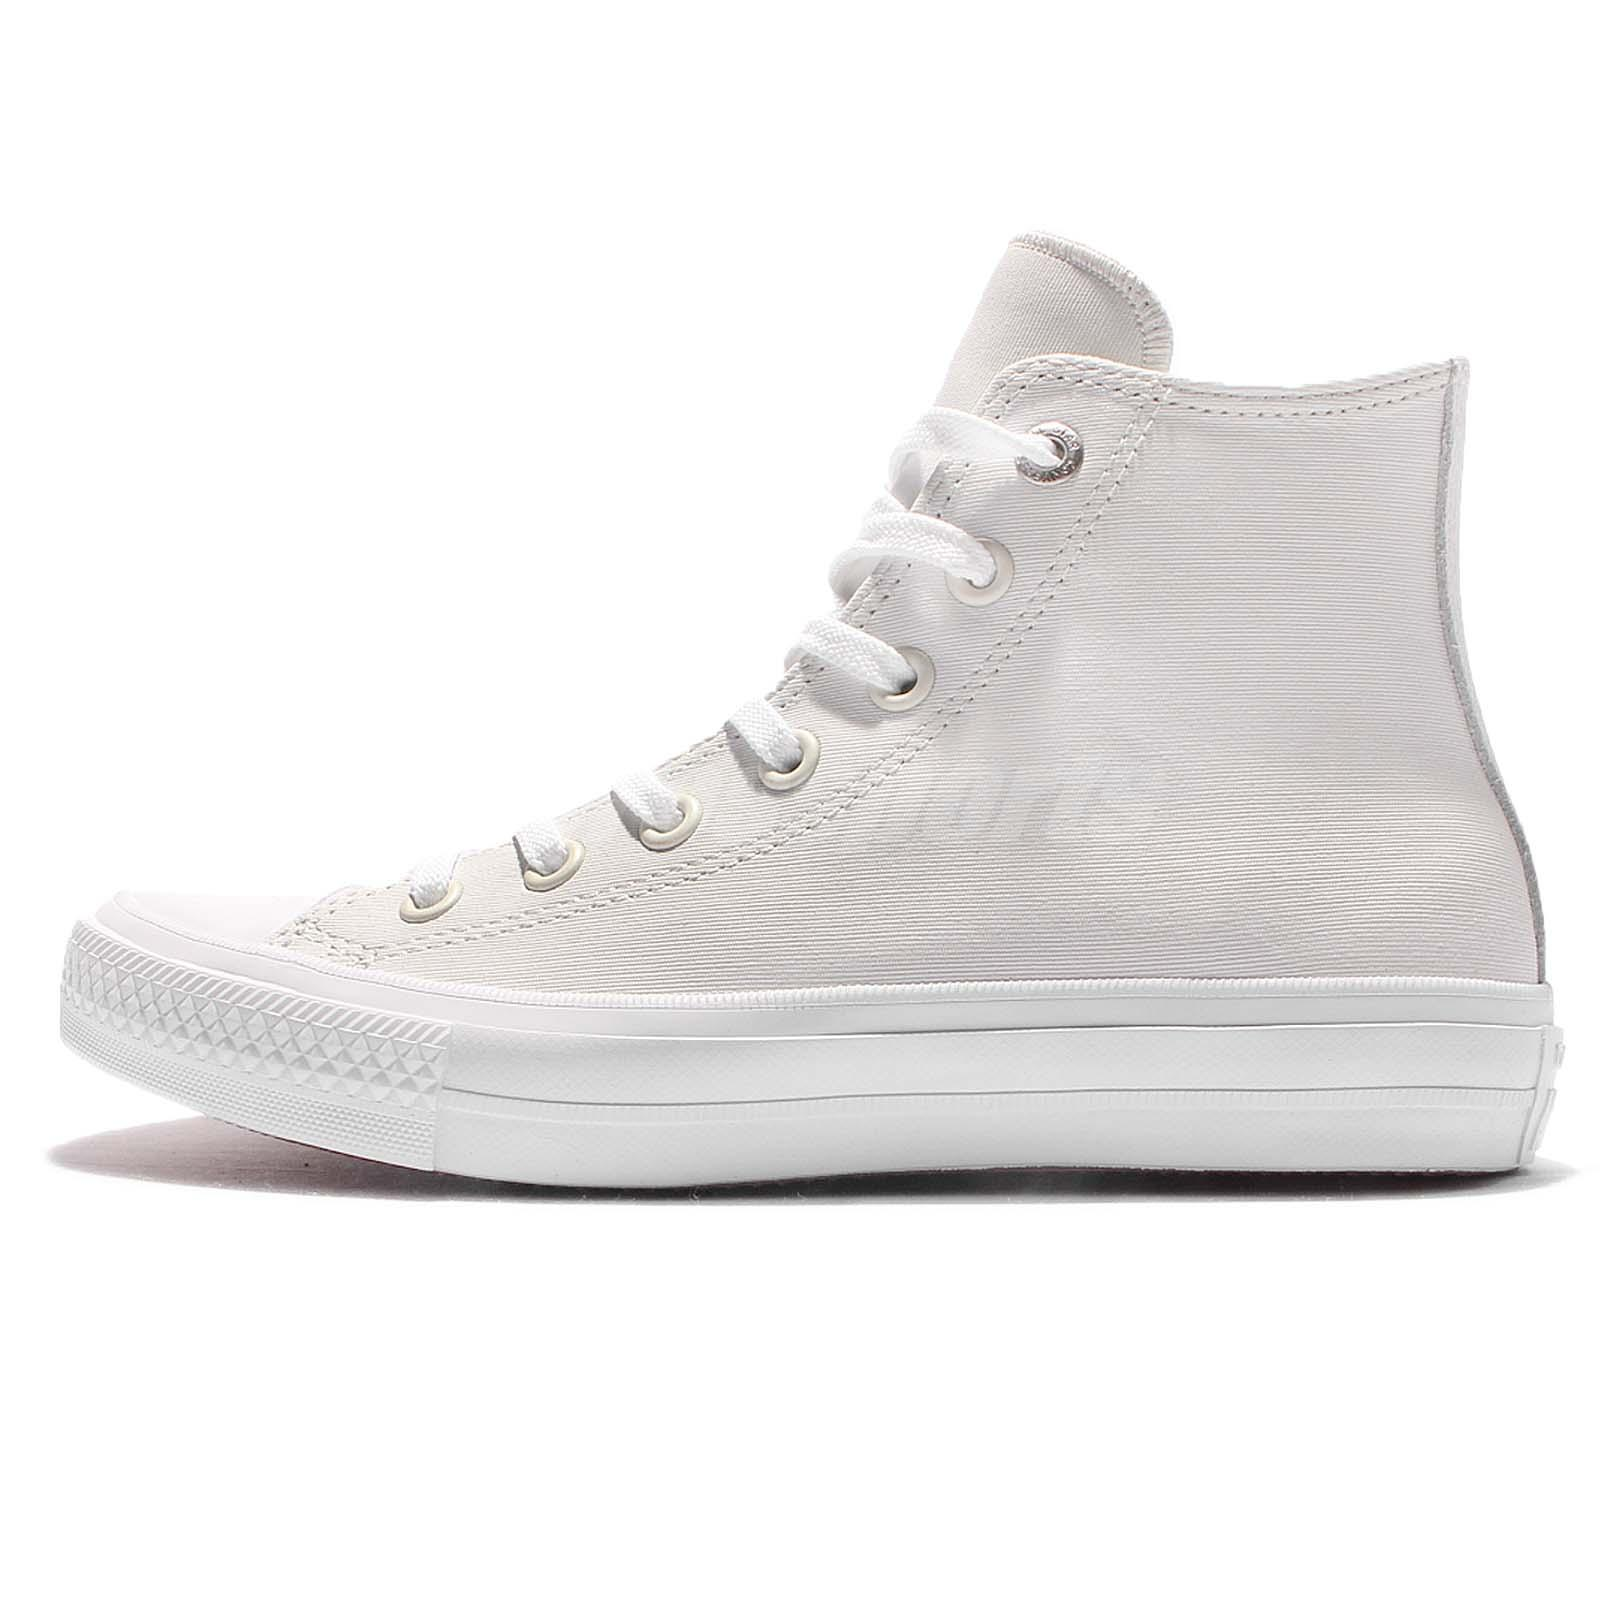 6f7be6cab595fa Converse Chuck Taylor All Star II Two-Tone Leather High Top White Men  154027C